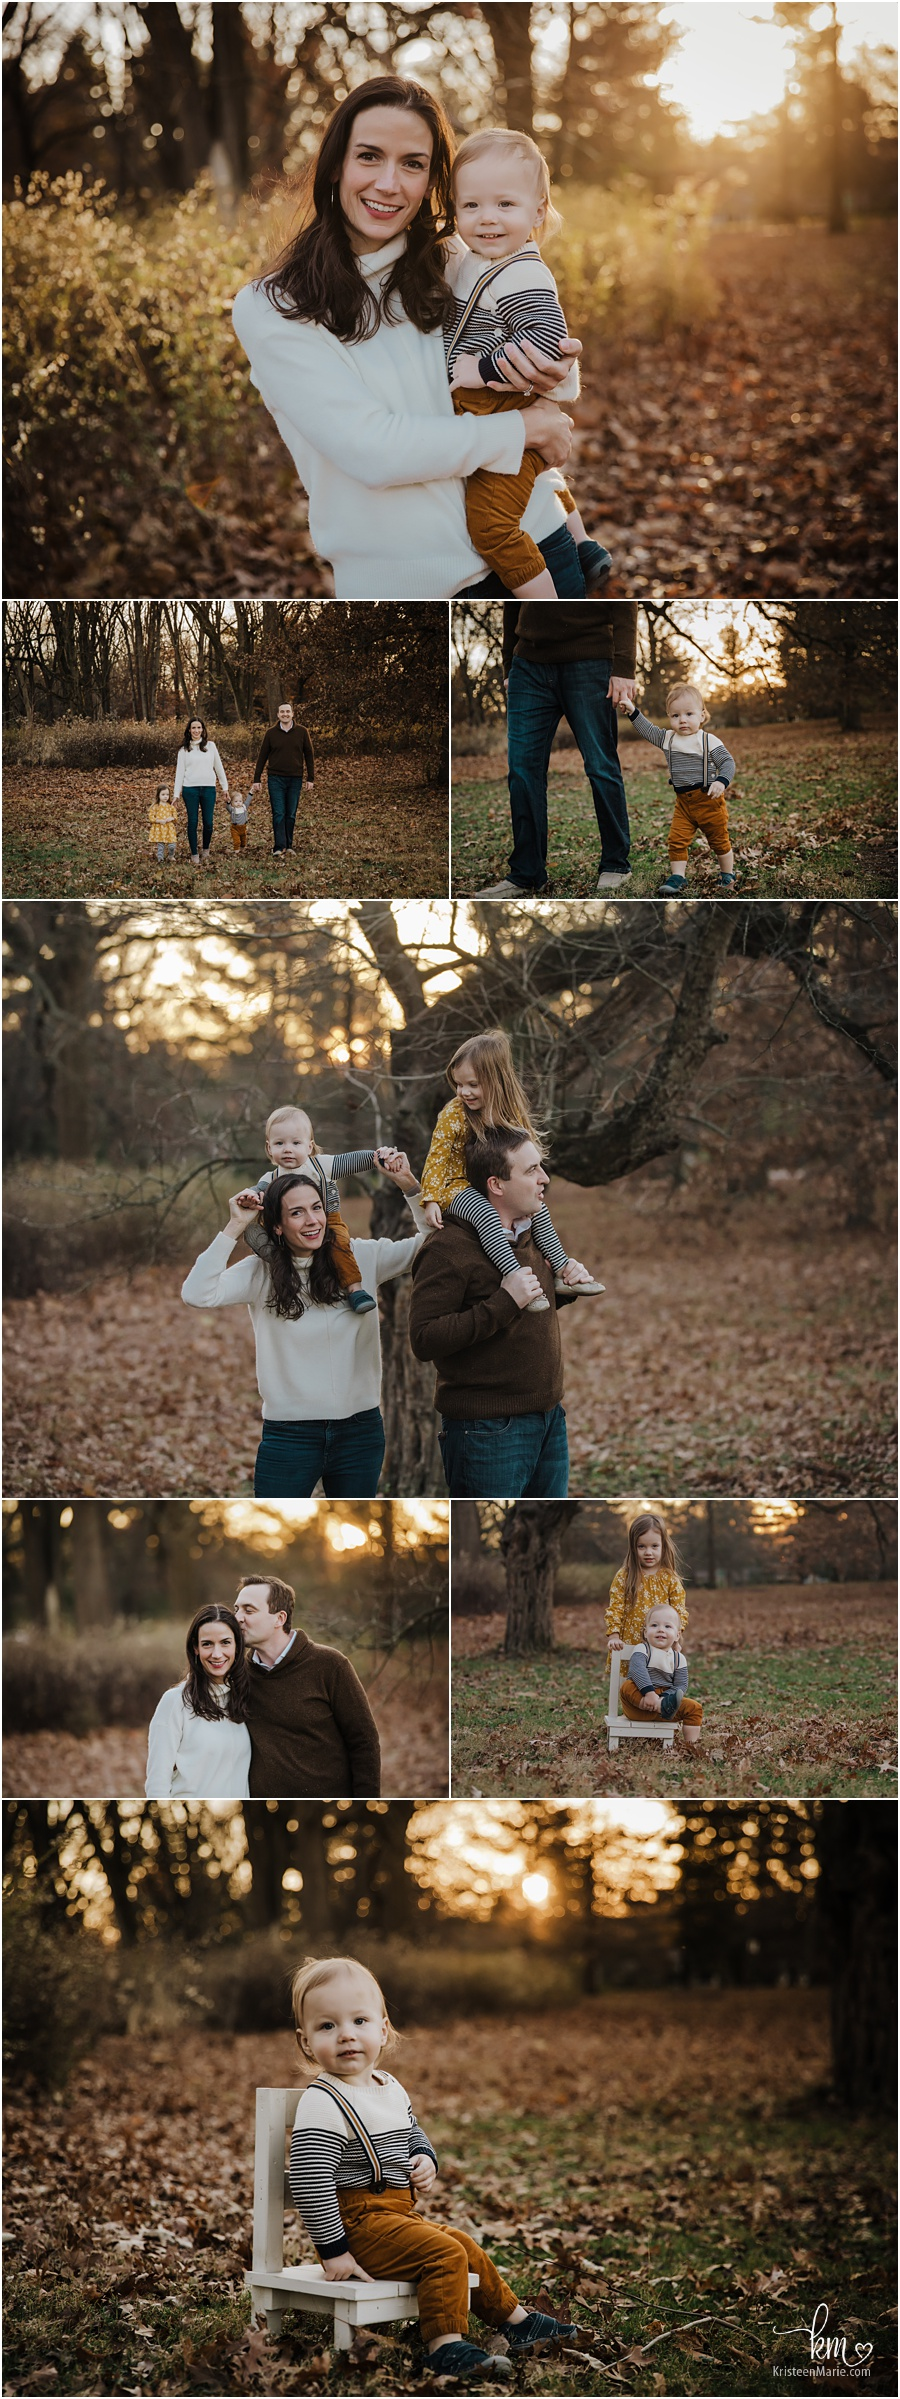 Indianapolis family photography - outdoor fall session